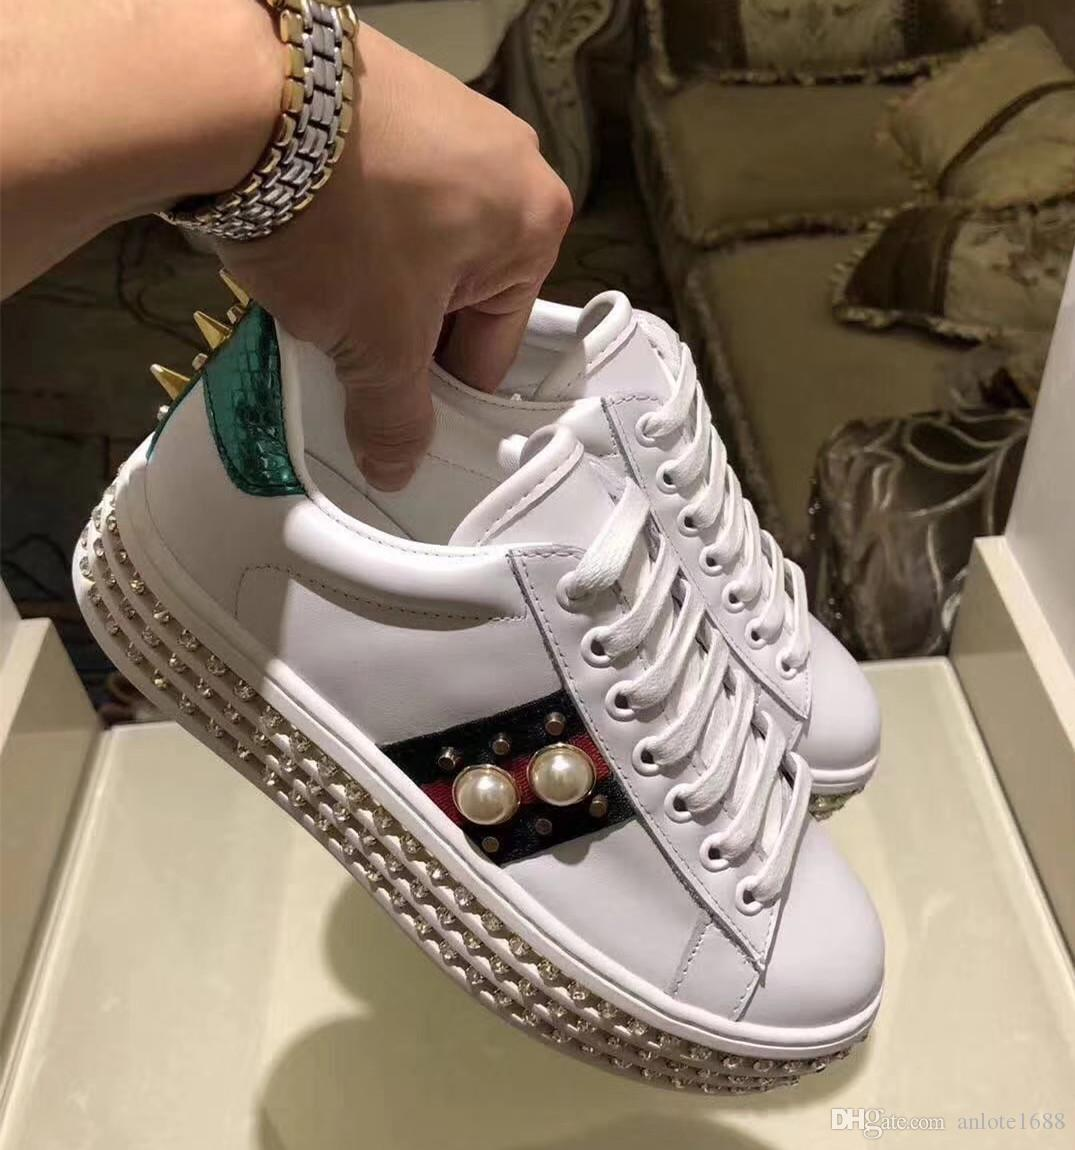 3bb8cd06860 Women Ace Embroidered Sneakers With Crystals Leather Pearl Flats Shoes  Platform Creepers Casual Sport Shoes Original Box Indoor Soccer Shoes  Oxford Shoes .